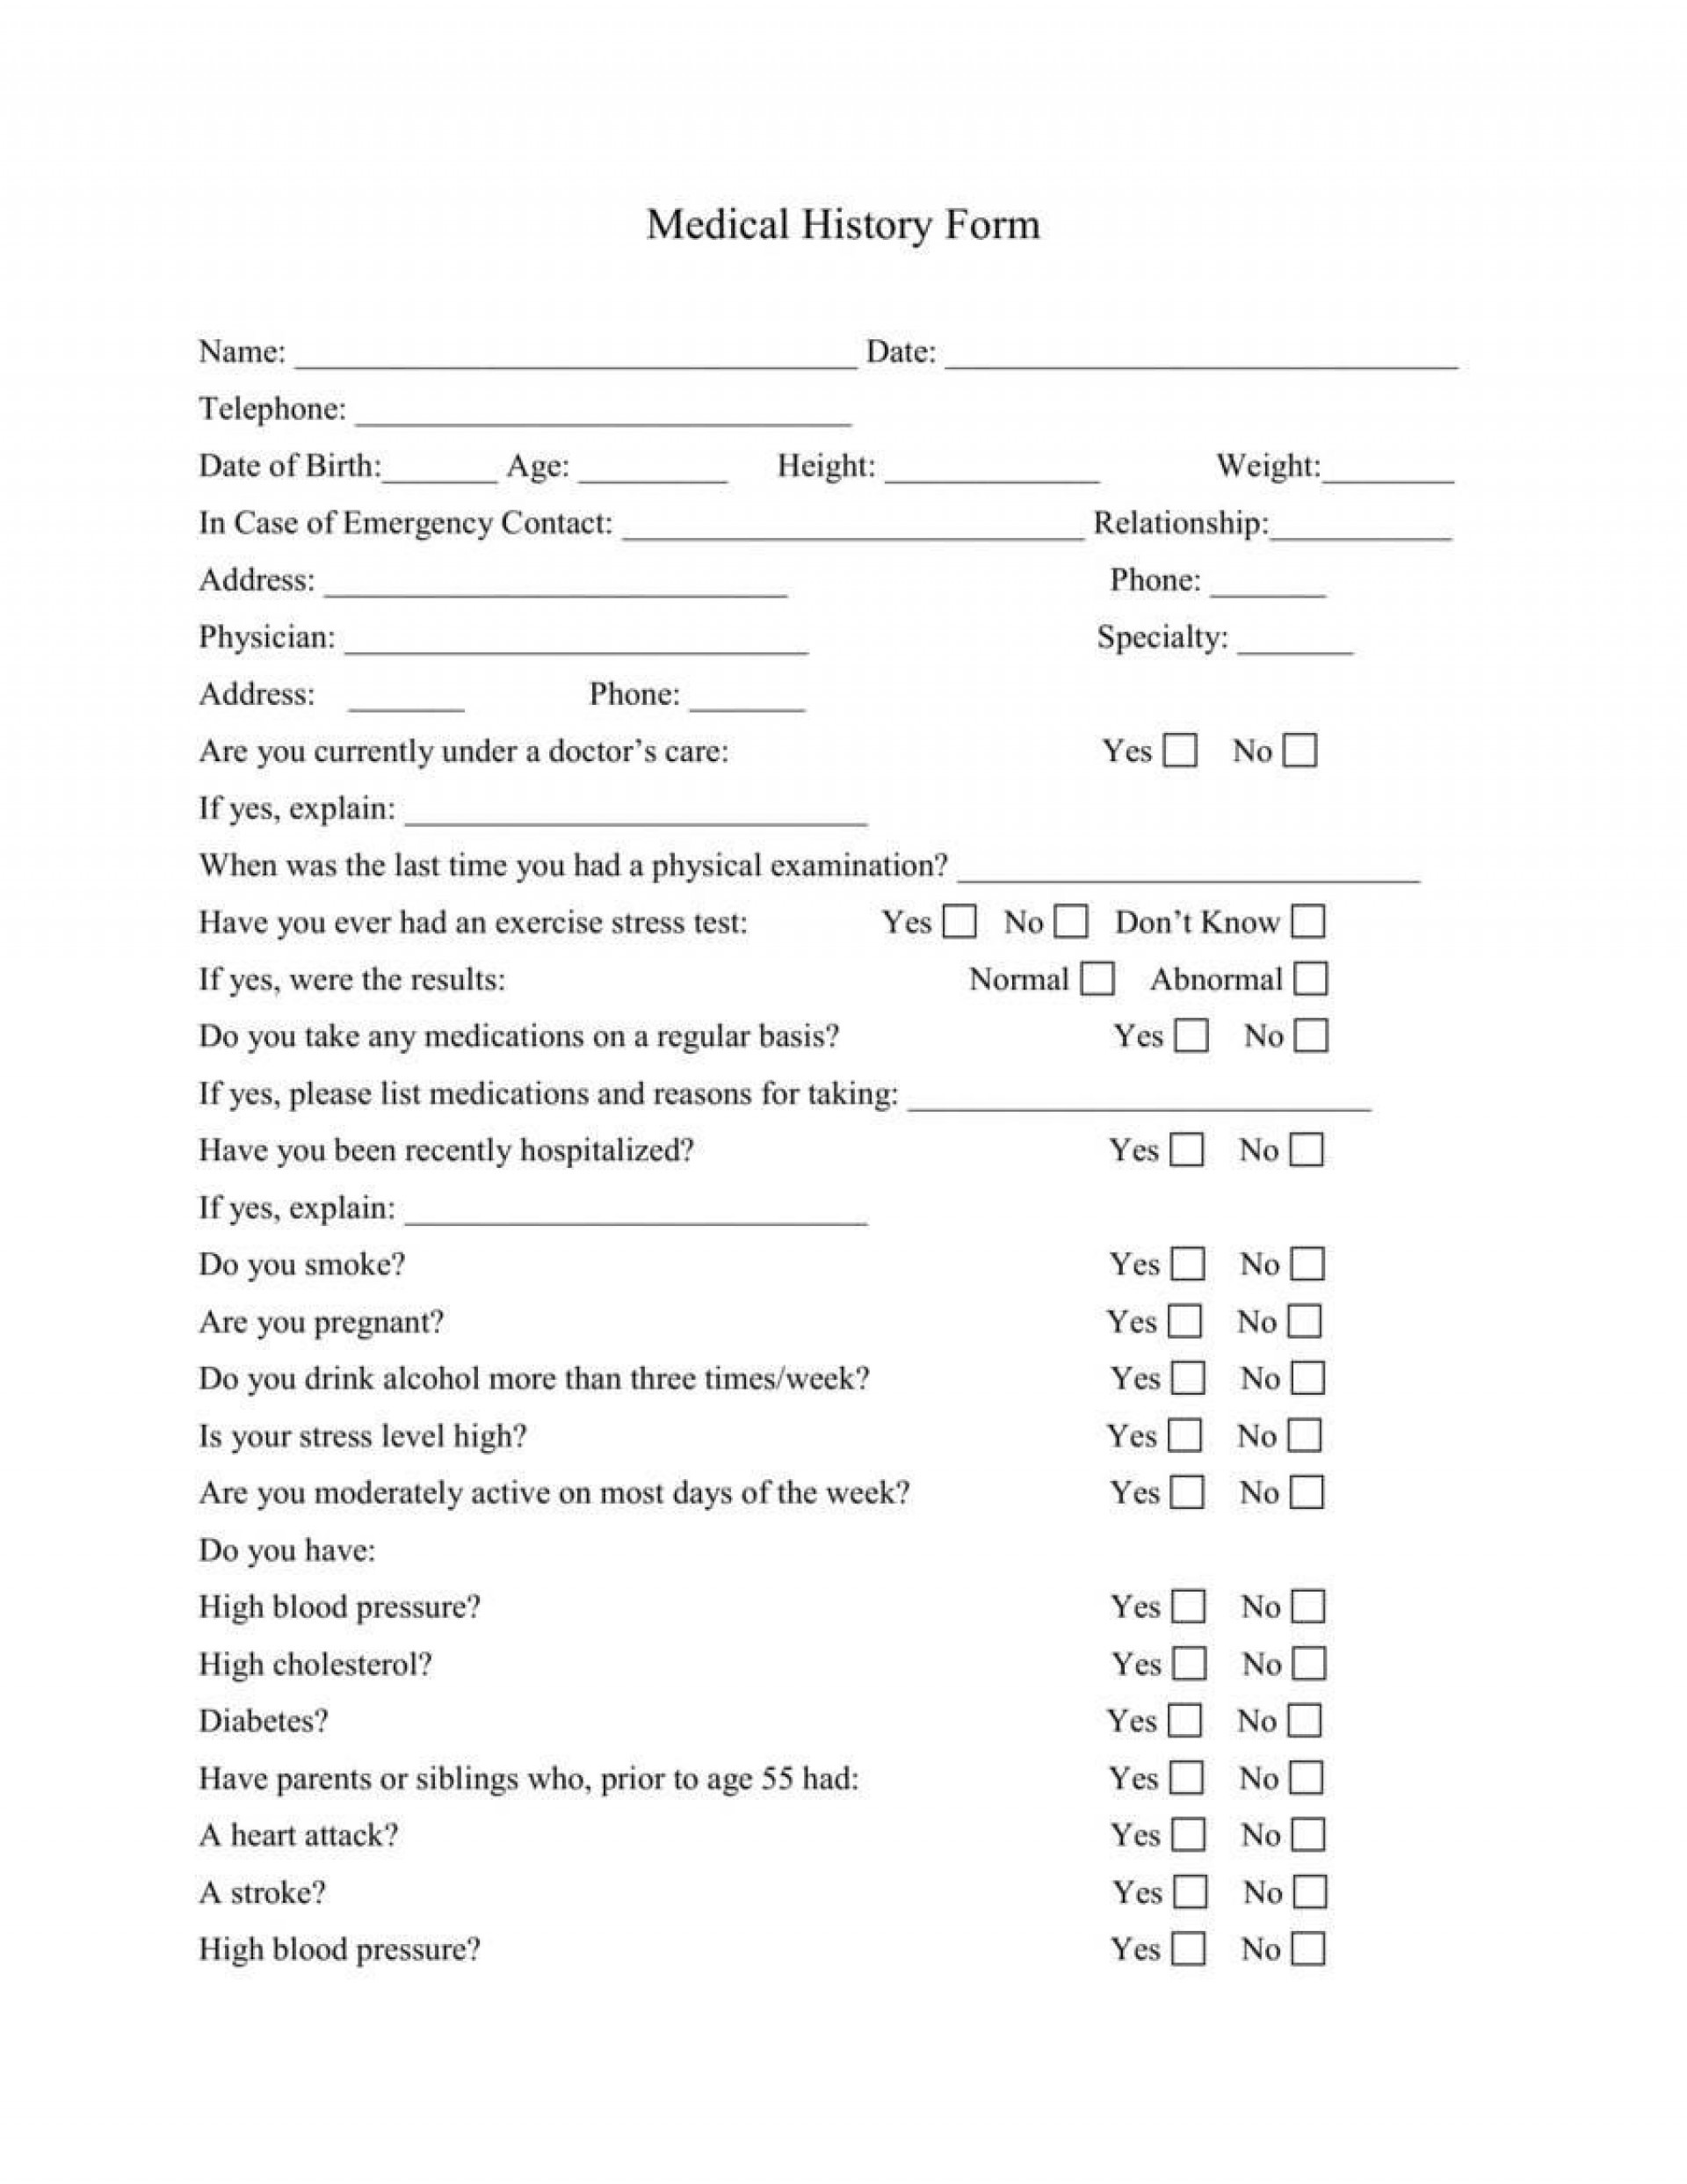 003 Fearsome Medical History Form Template For Personal Training High Definition 1920